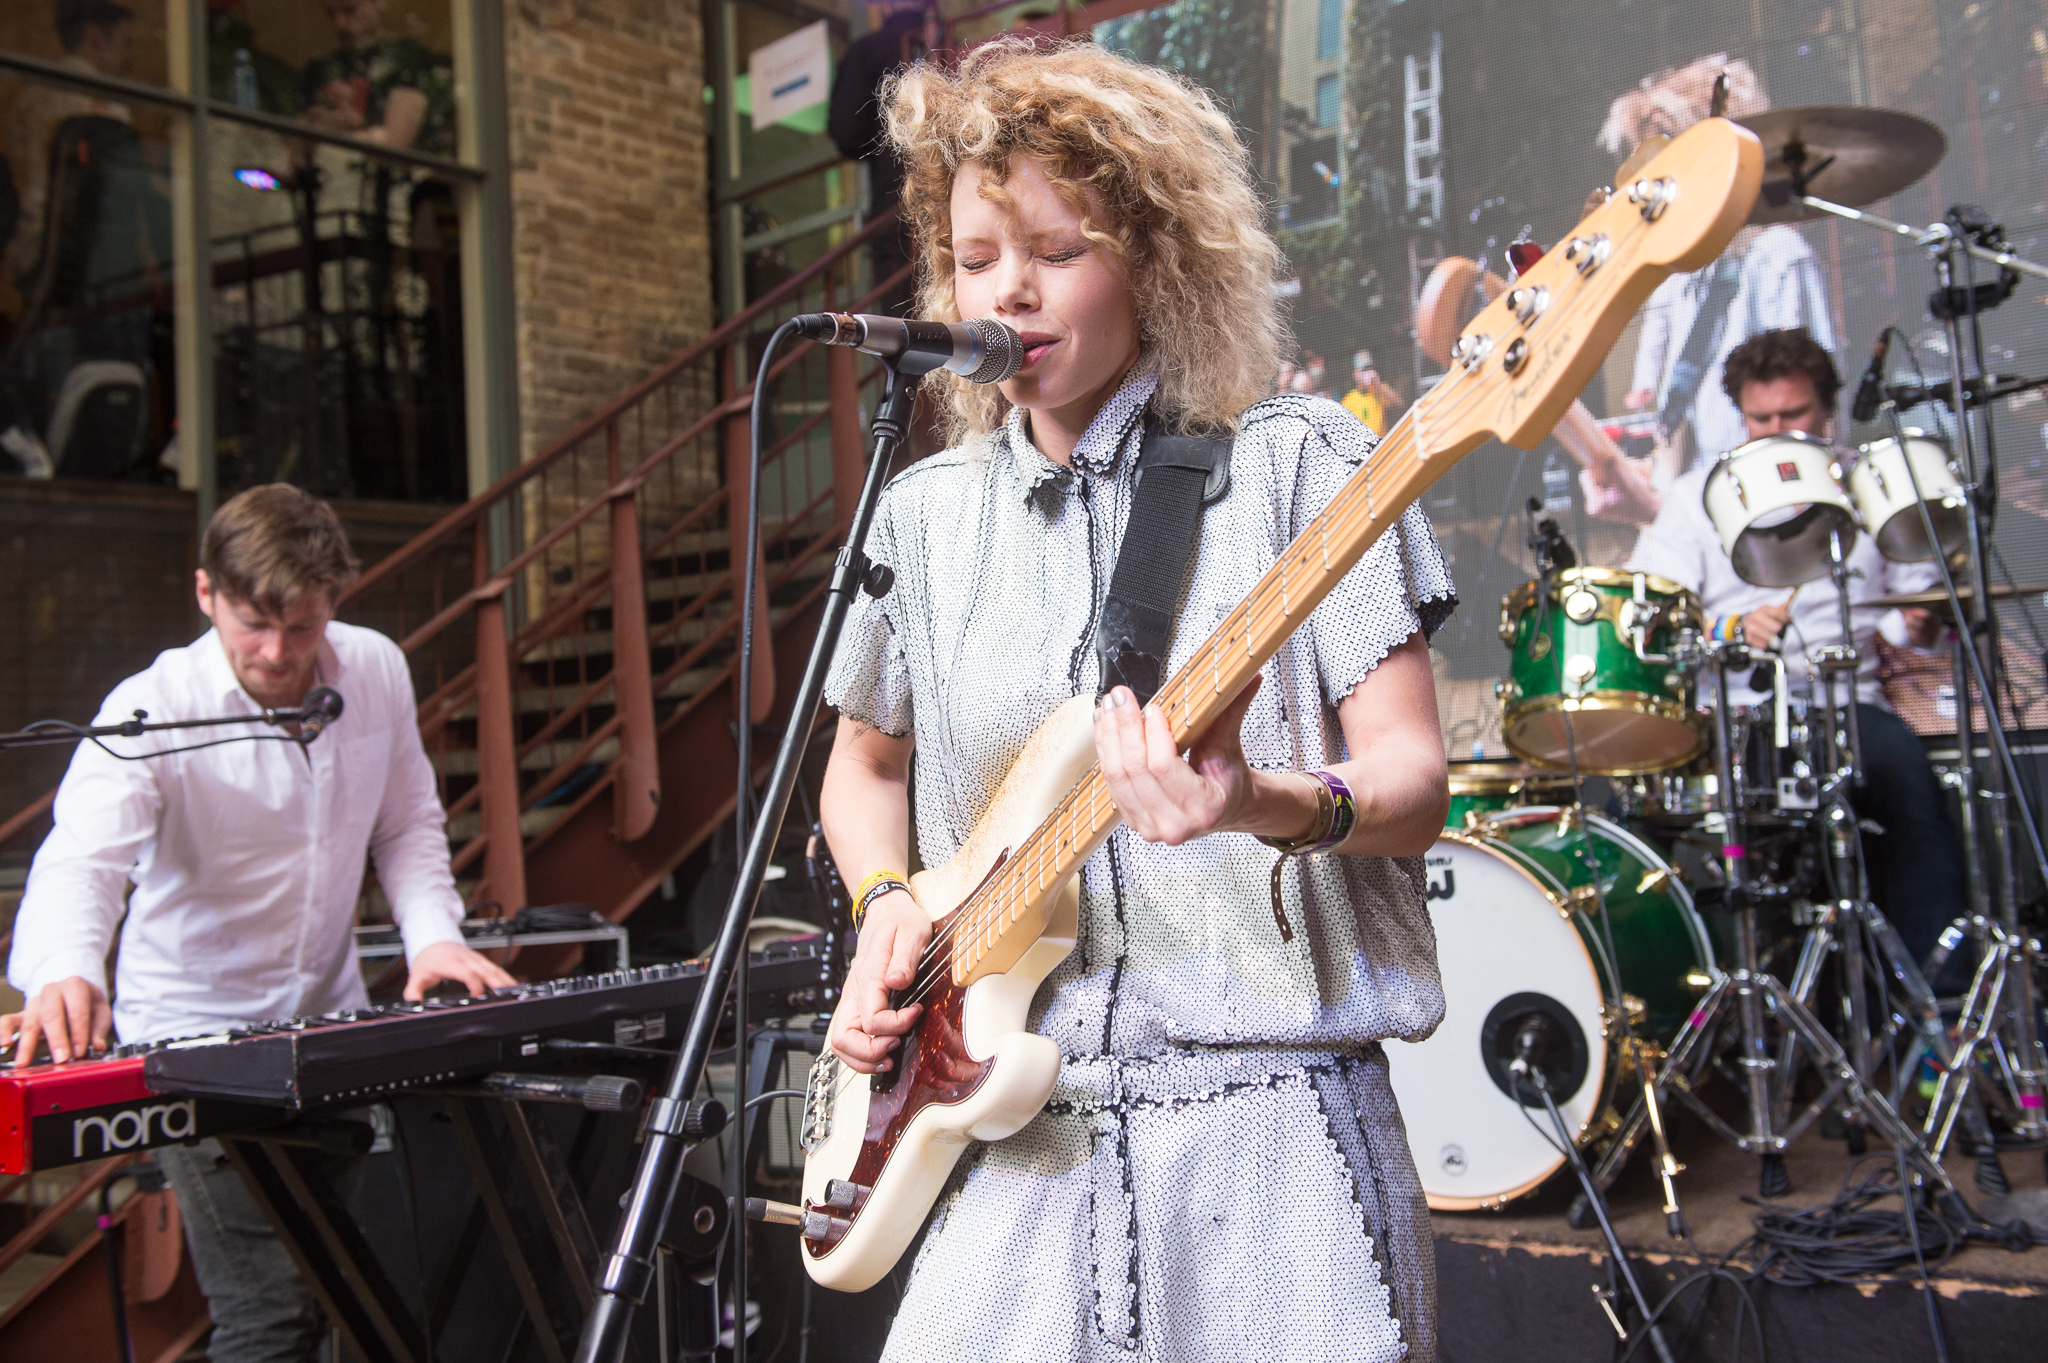 Norwegian bassist and singer Maya Vik performs at Cedar Street Courtyard.